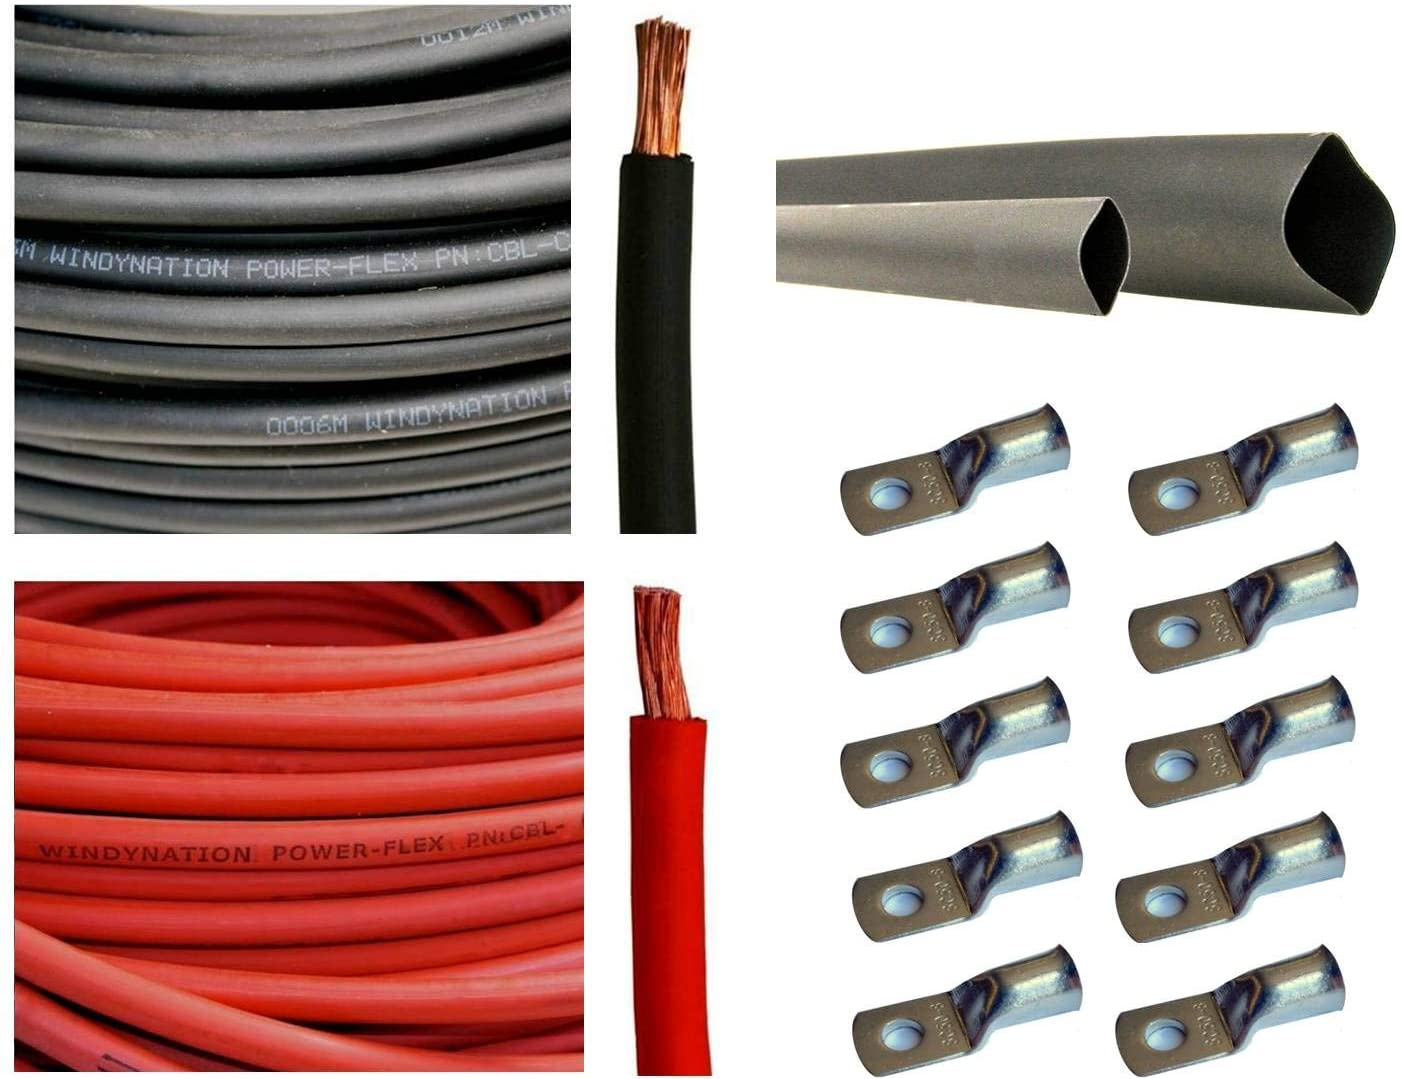 WNI 4 AWG 4 Gauge 5 Feet Black + 5 Feet Red Battery Welding Pure Copper Ultra Flexible Cable + 5pcs of 5/16